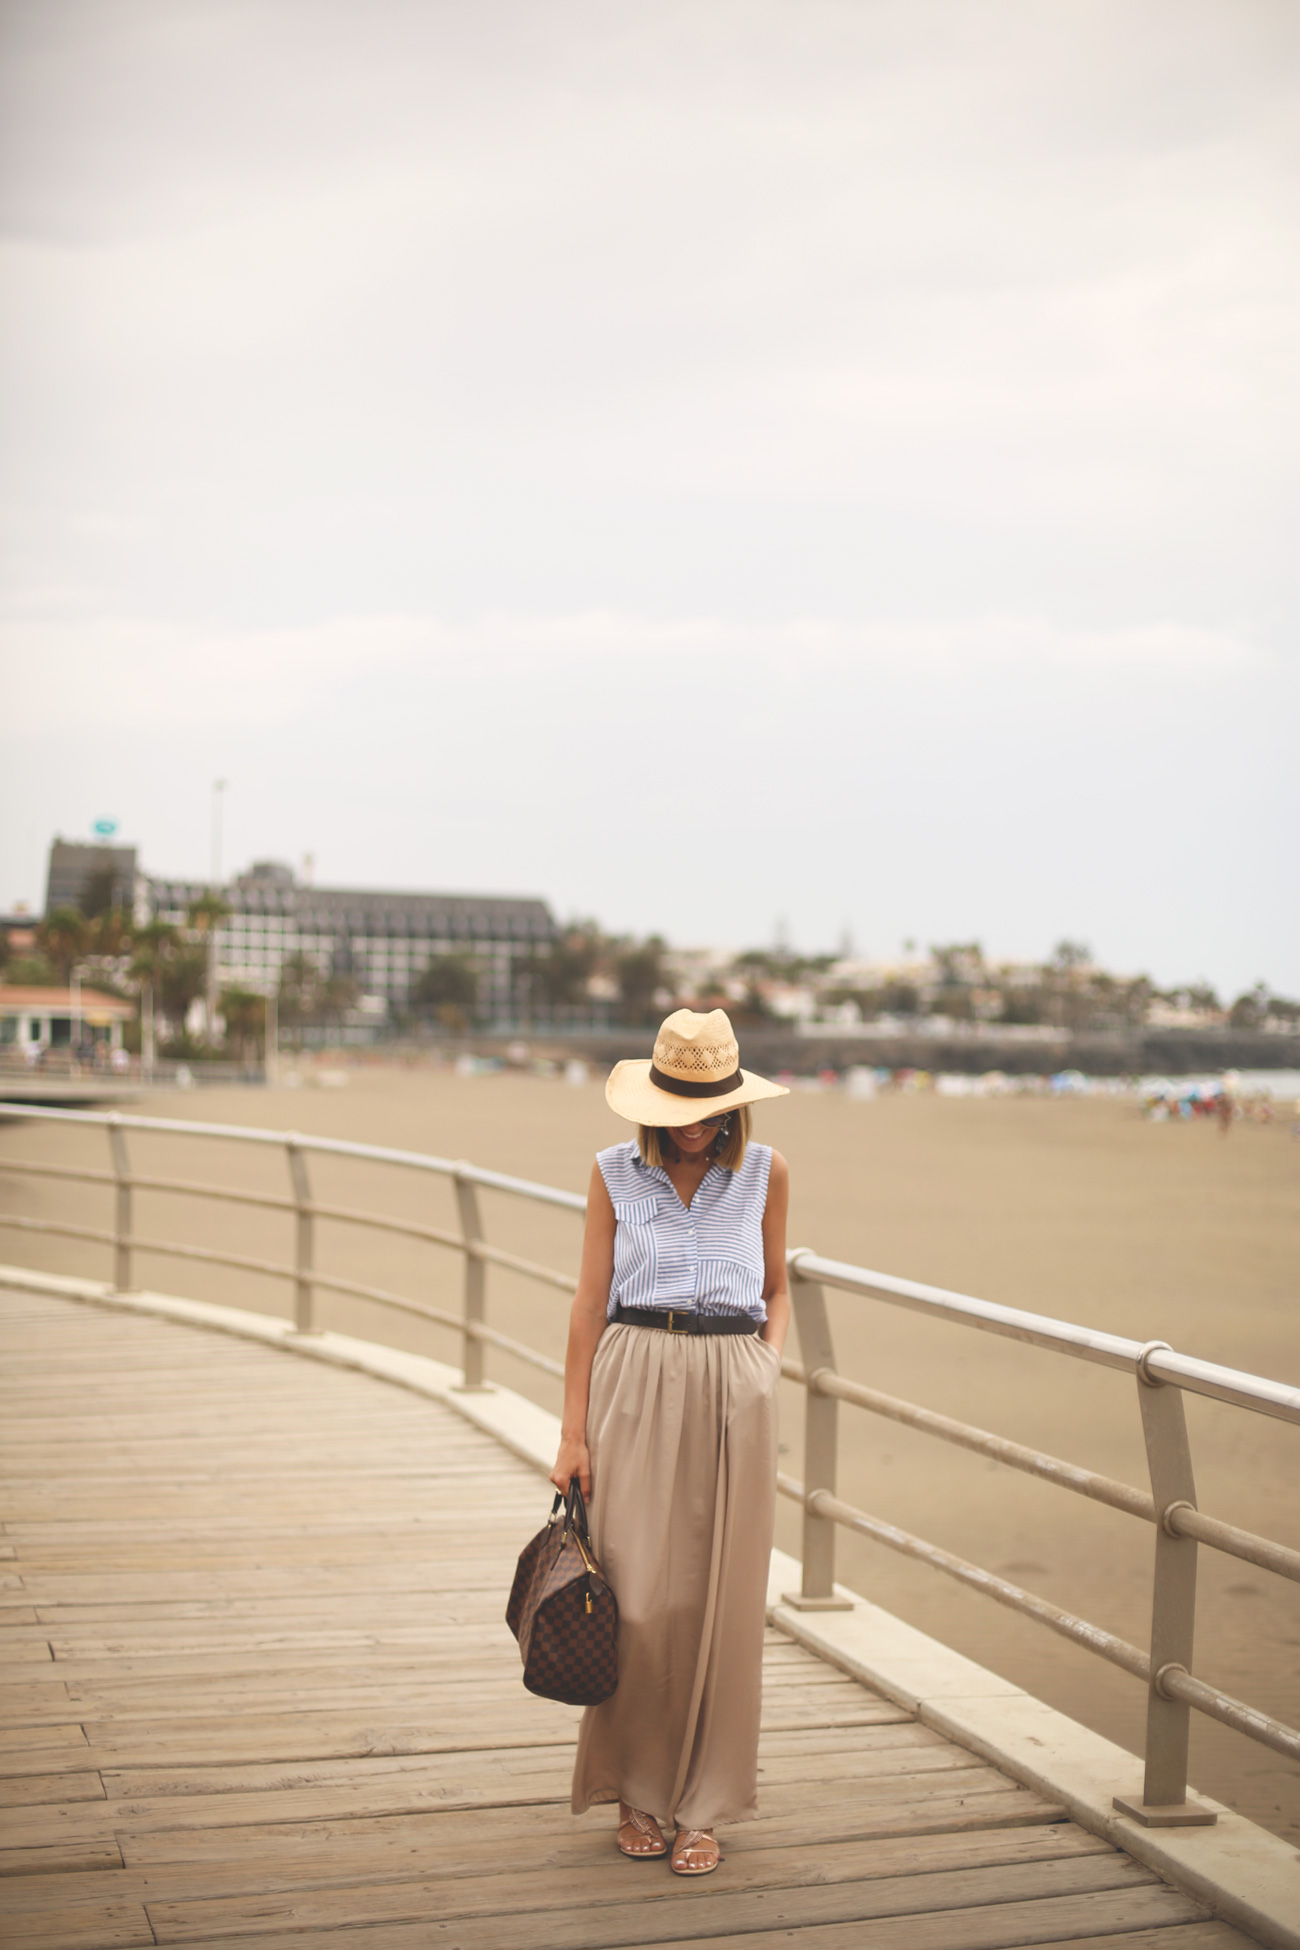 Palazzo, maxi skirt, beige, hat, sunnies, cutler gross, speedy, Louis Vuitton, Tous, Jewelry, sandals, deichmann